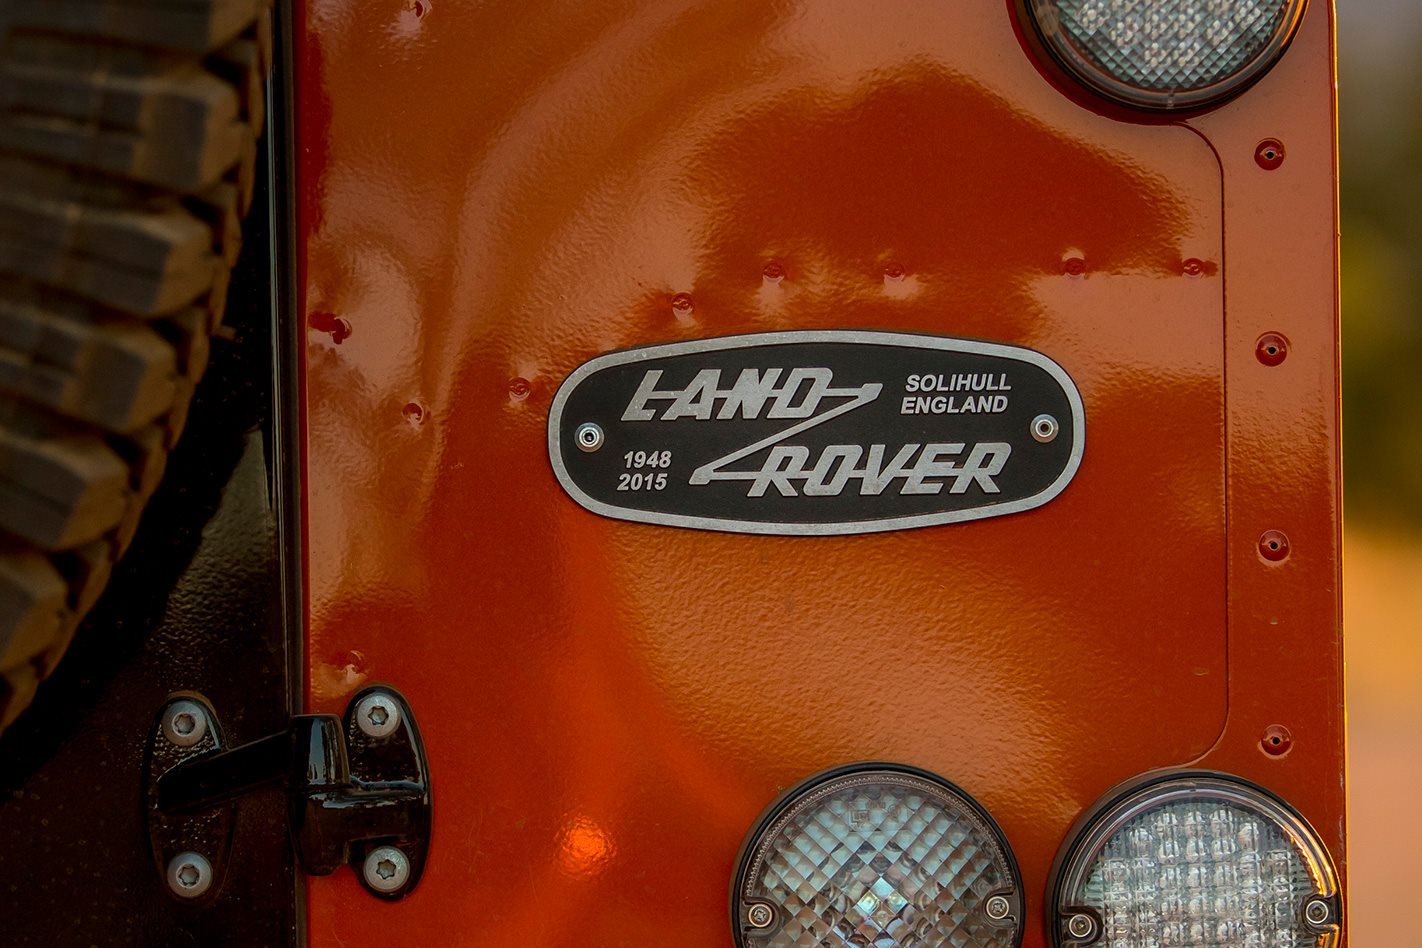 The Land Rover badge